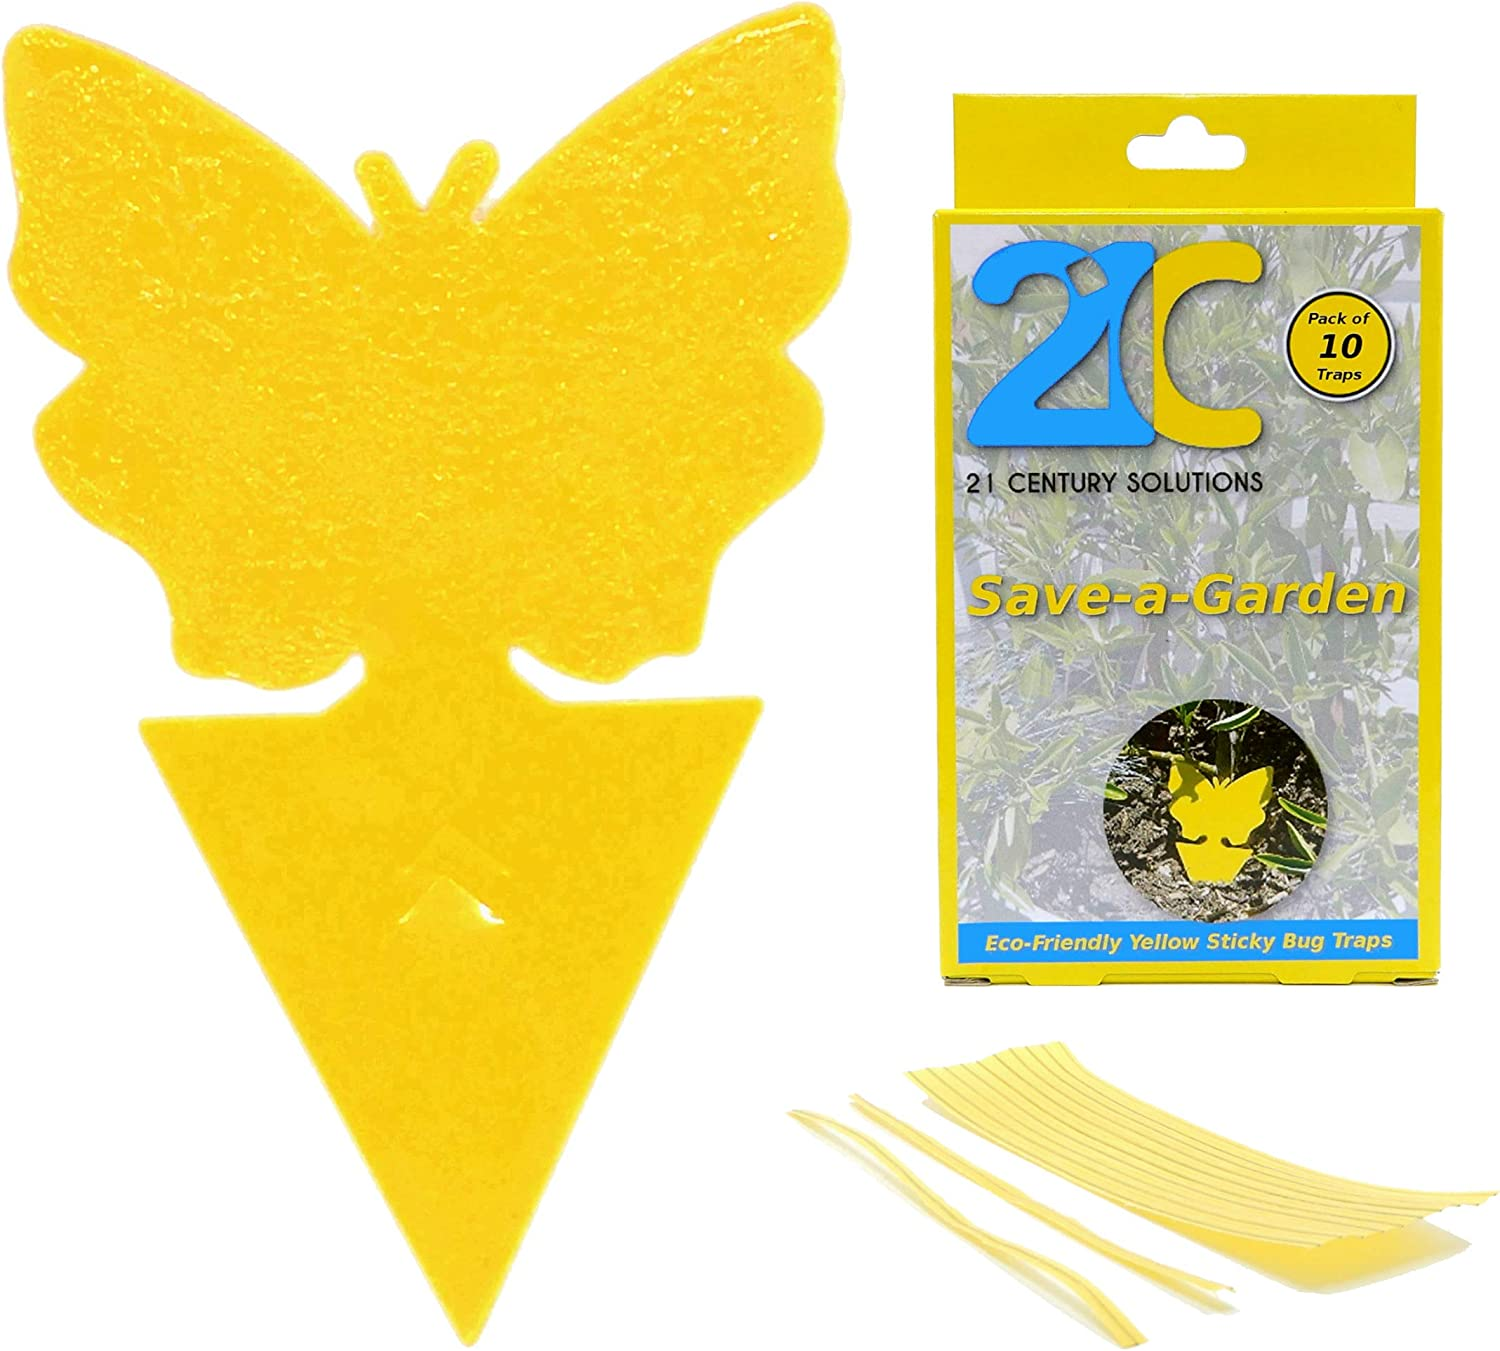 21C 21 Century Solutions Yellow Dual Sticky Fly Traps 10-Pack for Gnat Whiteflies Fungus Gnats Flying Insects - Houseplant Disposable Glue Trappers Save a Garden Butterfly Shape